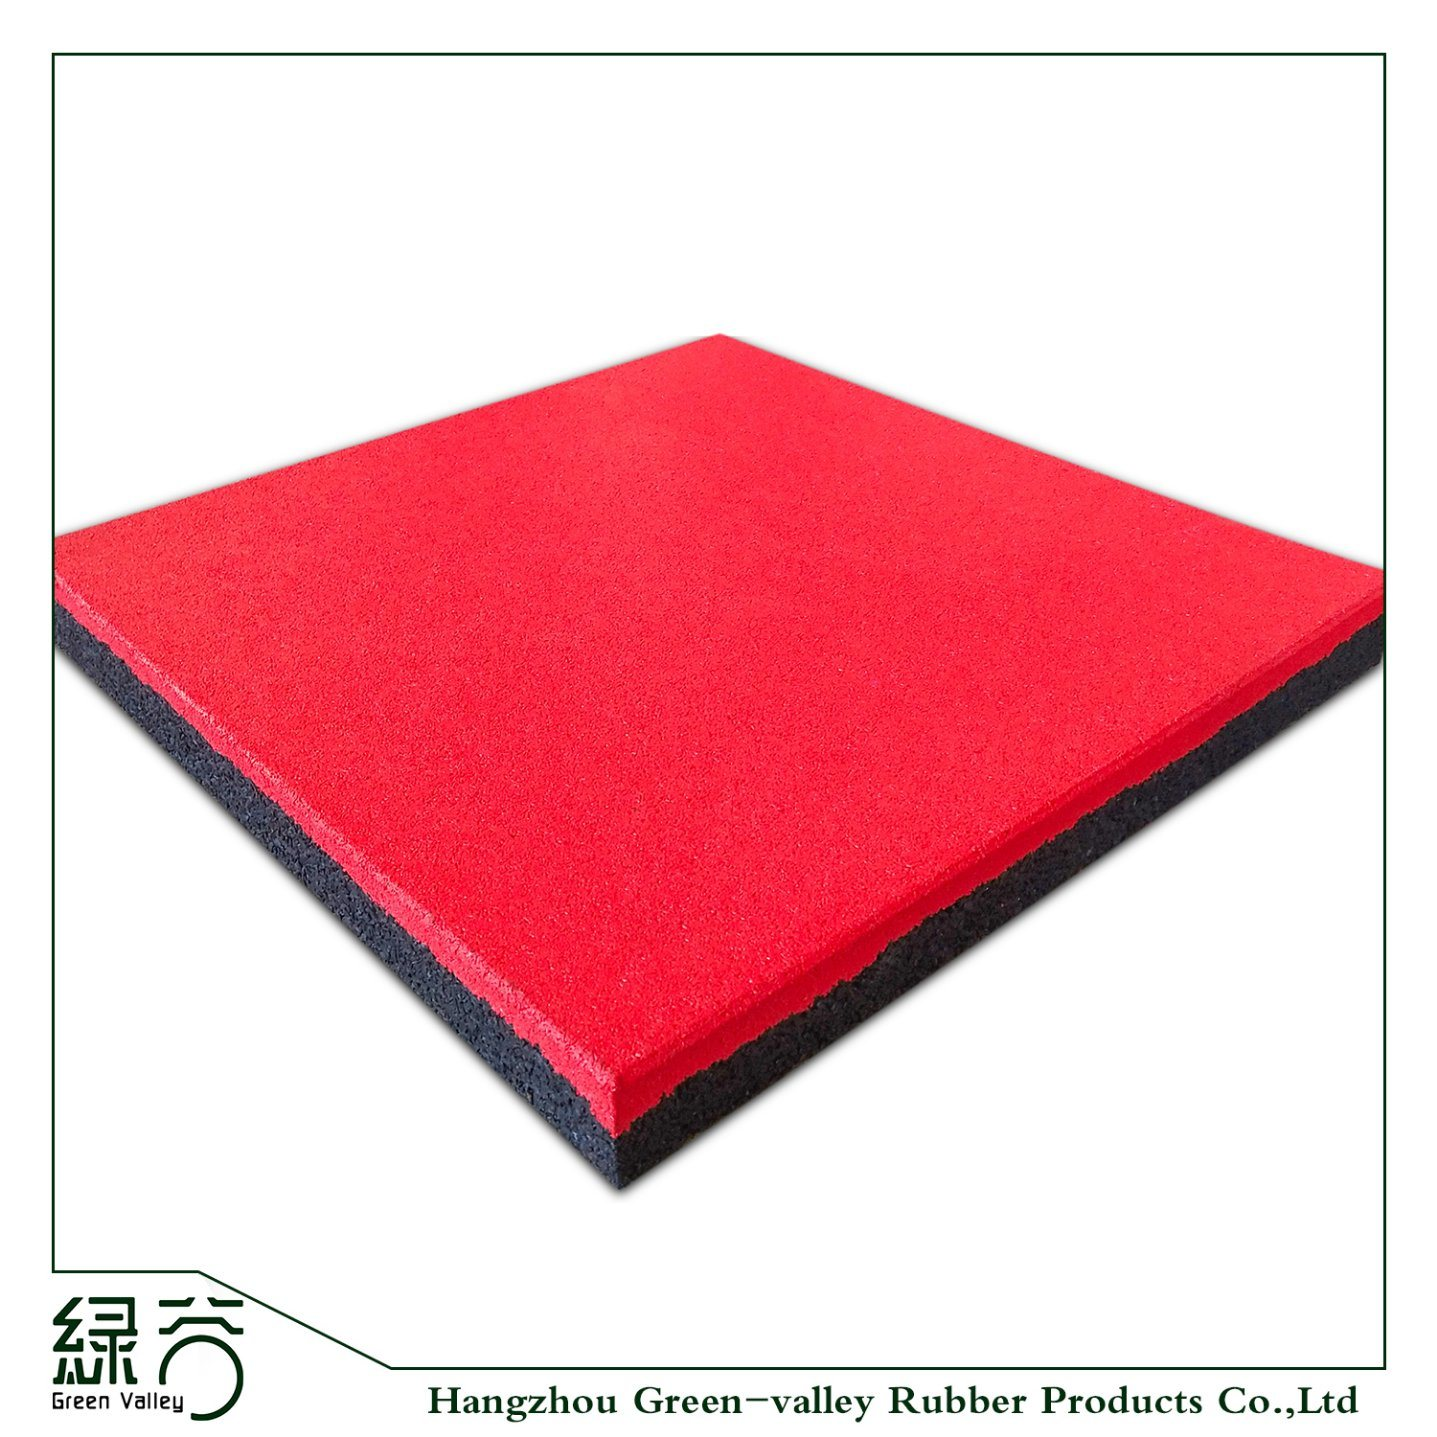 Factory Customized Commercial Crossfit Anti Vibration Shock Absorber Epdm Speckles Rubber Flooring Mat For Racecourse Garden Playgroundwalkway Park Yard